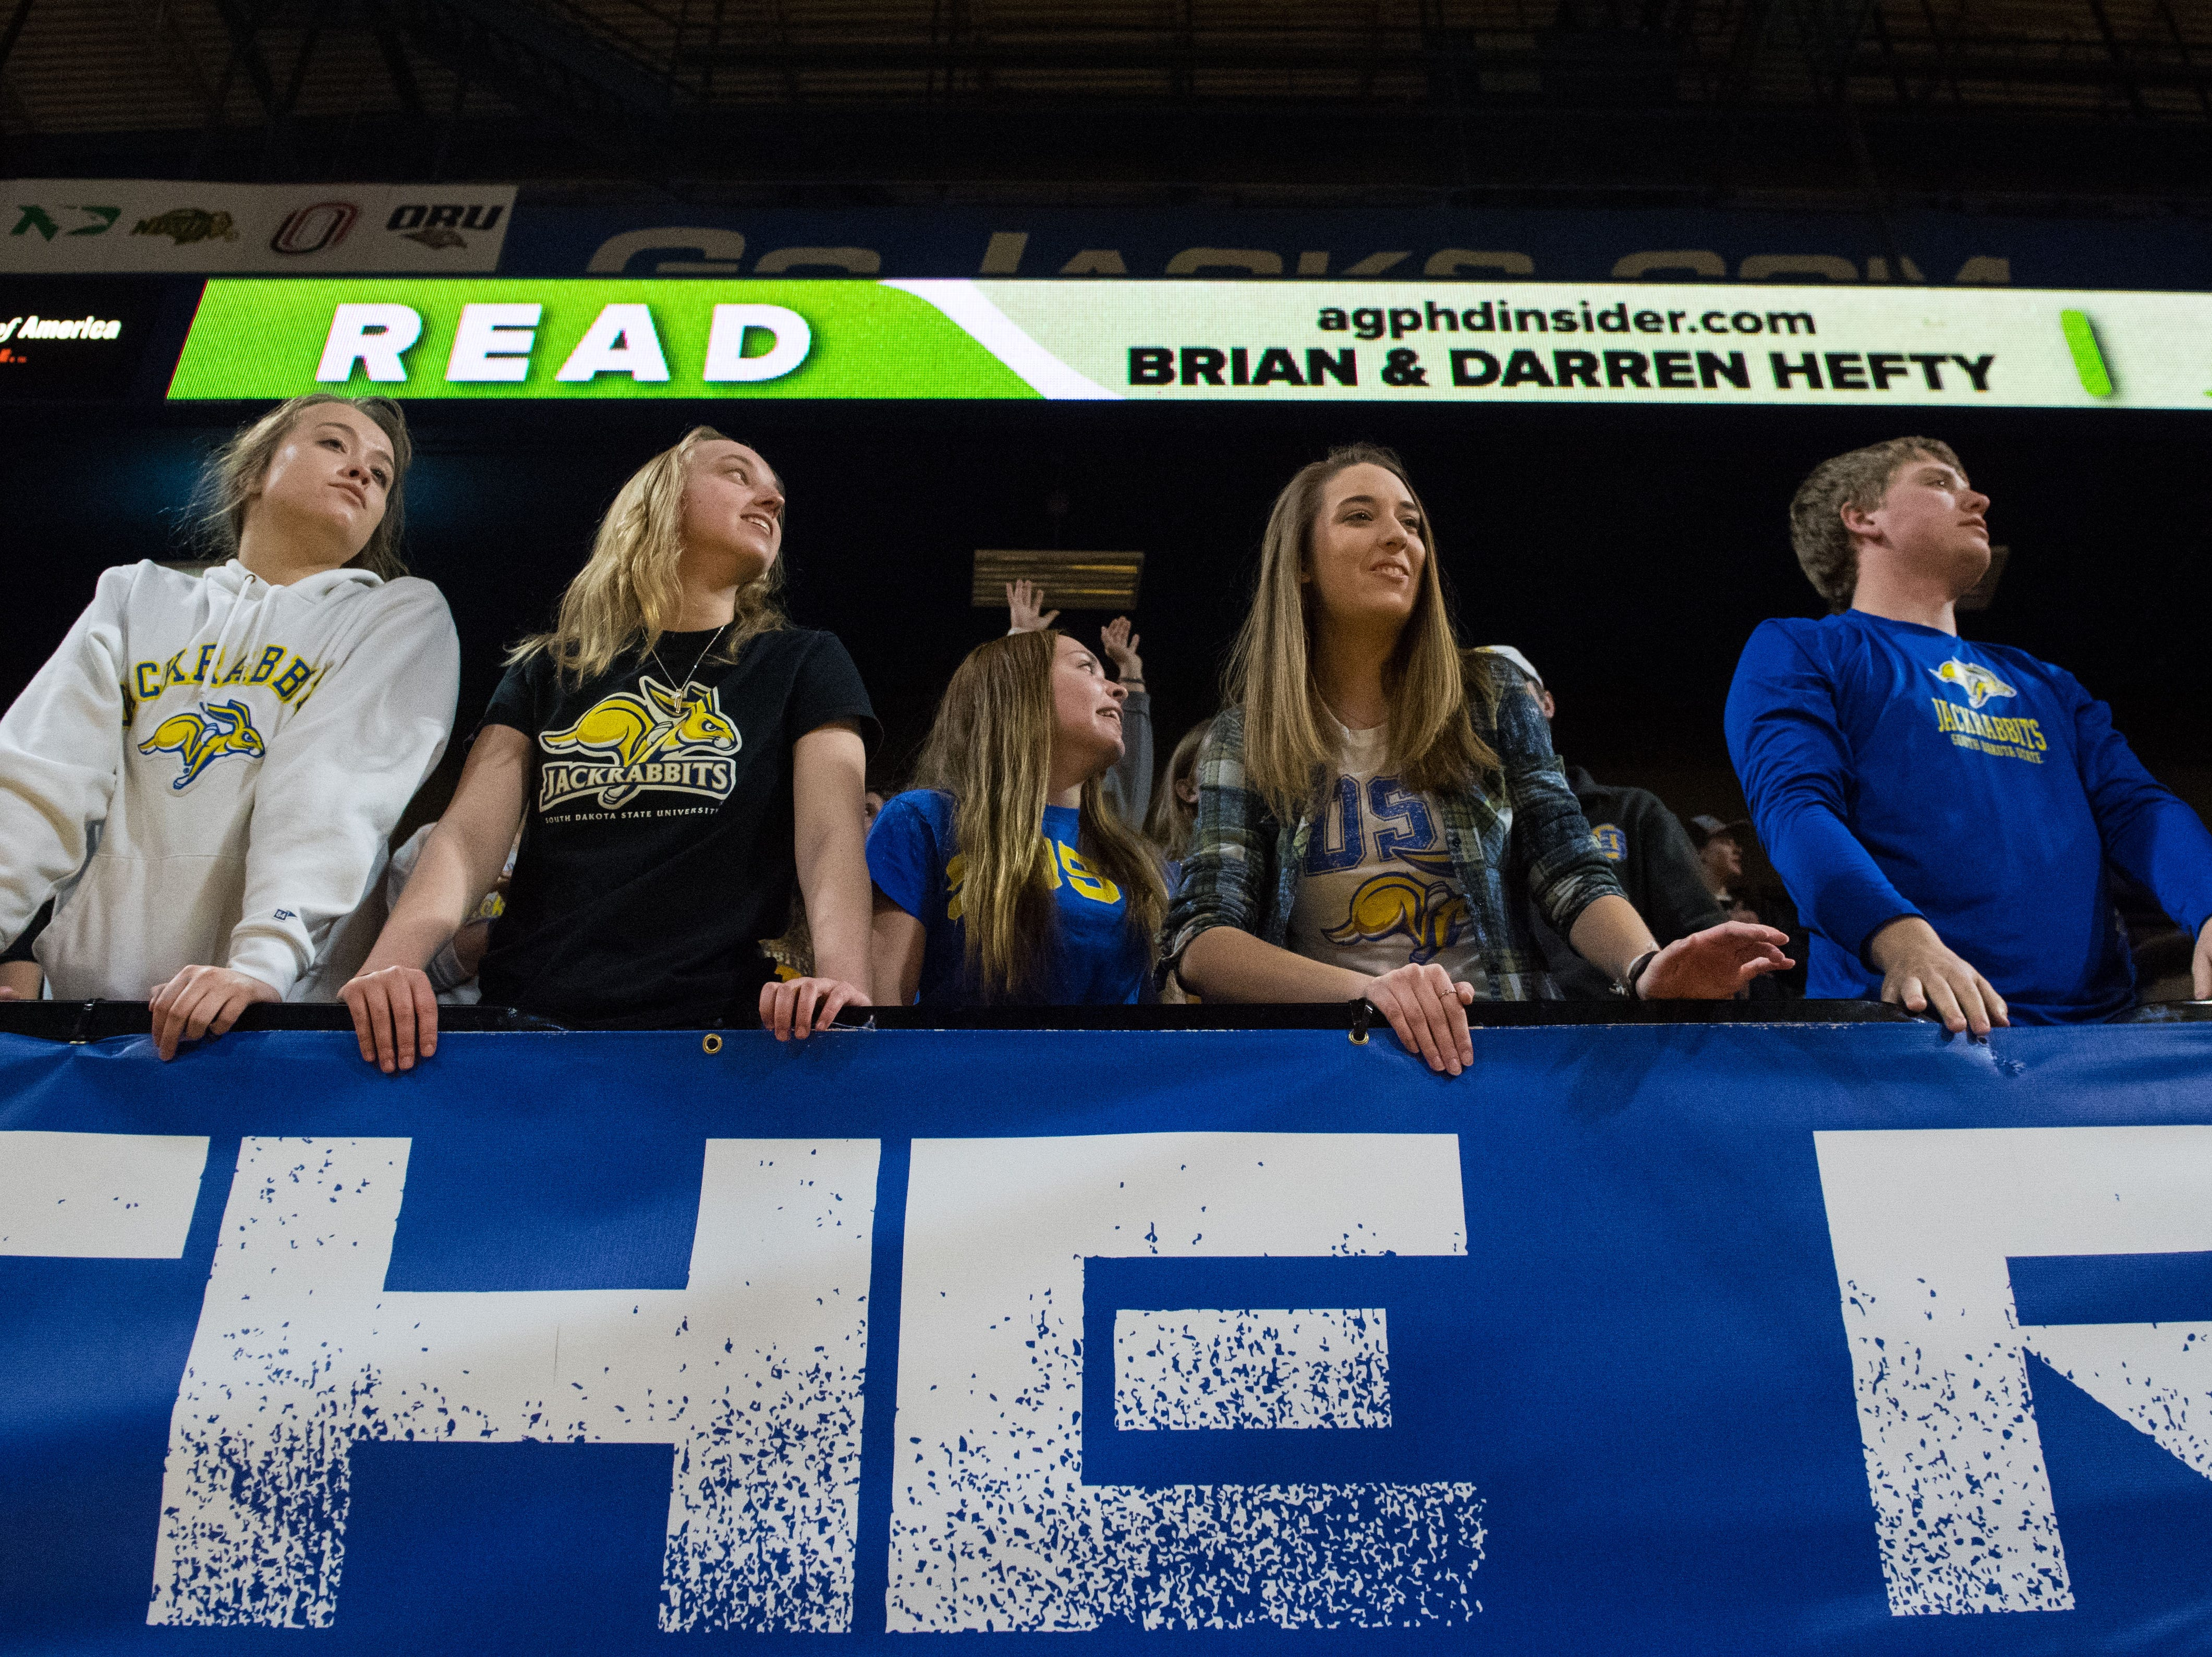 SDSU fans react during a game against USD, Saturday, Feb. 23, 2019 in Brookings, S.D.